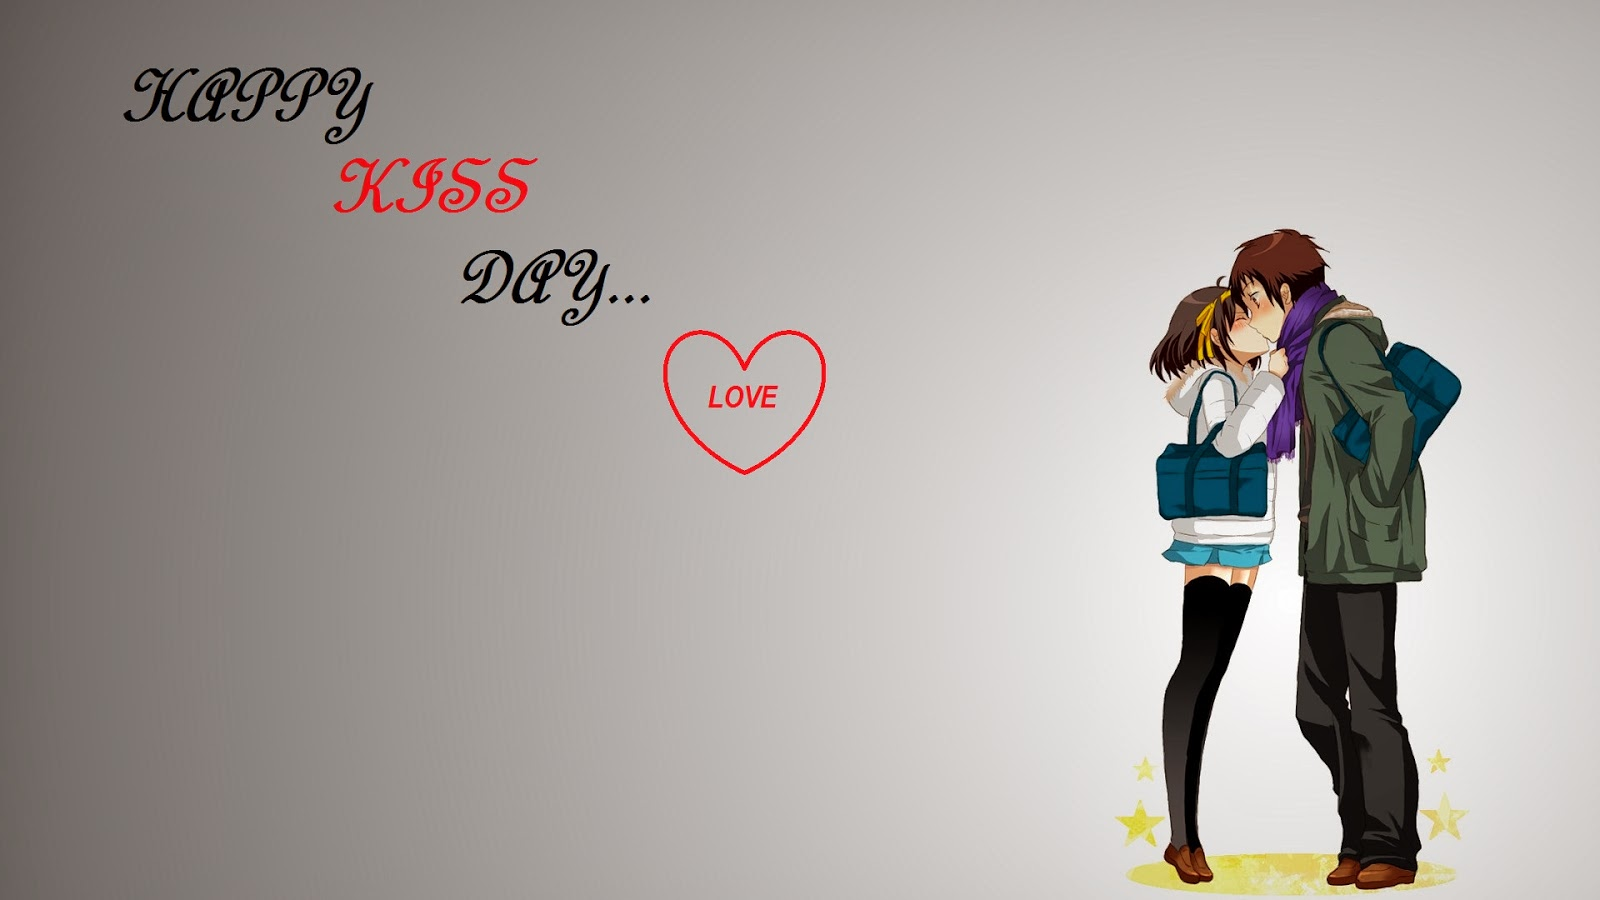 Happy Kiss Day 2014.HD Wallpapers and Pics.kiss of couple